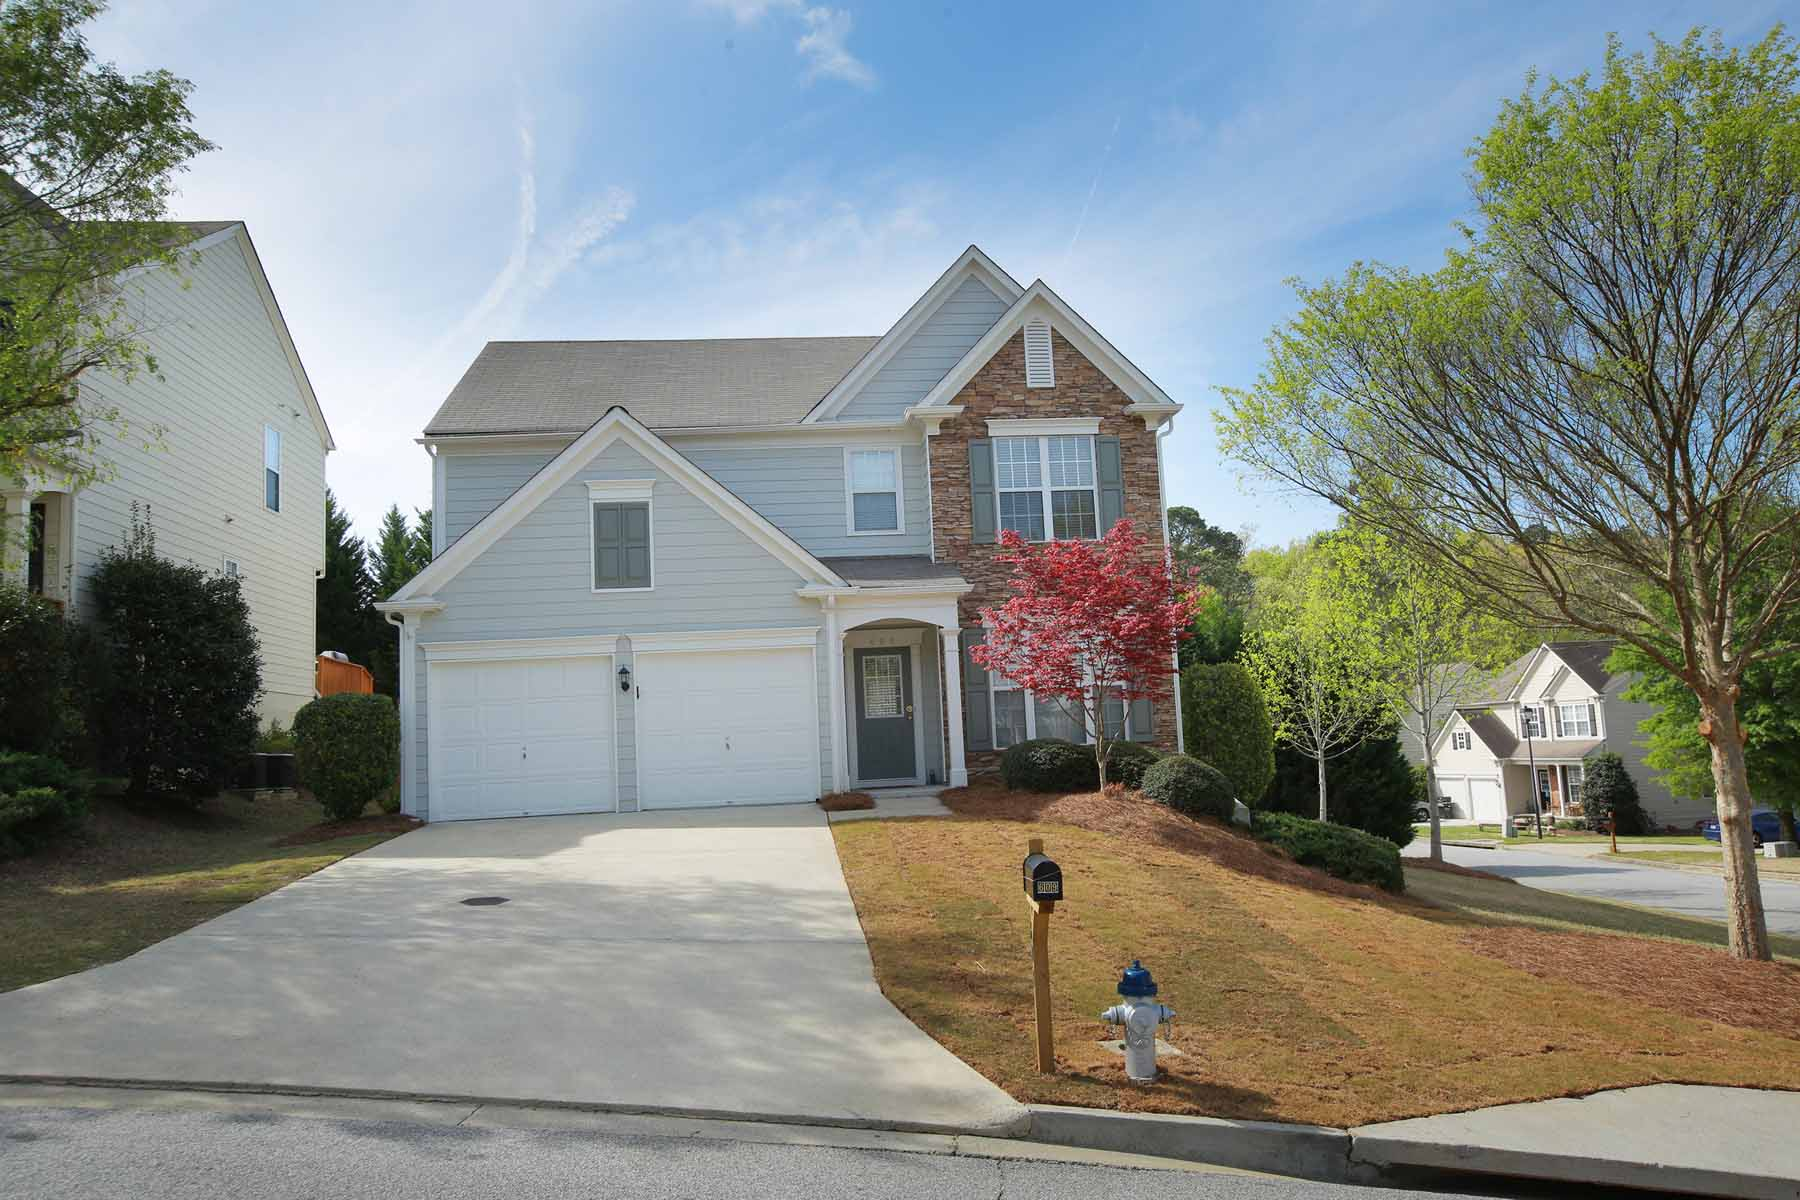 Maison unifamiliale pour l Vente à Great Brookshire neighborhood with wonderful amenities 609 Wallnut Hall Trail Woodstock, Georgia, 30189 États-Unis